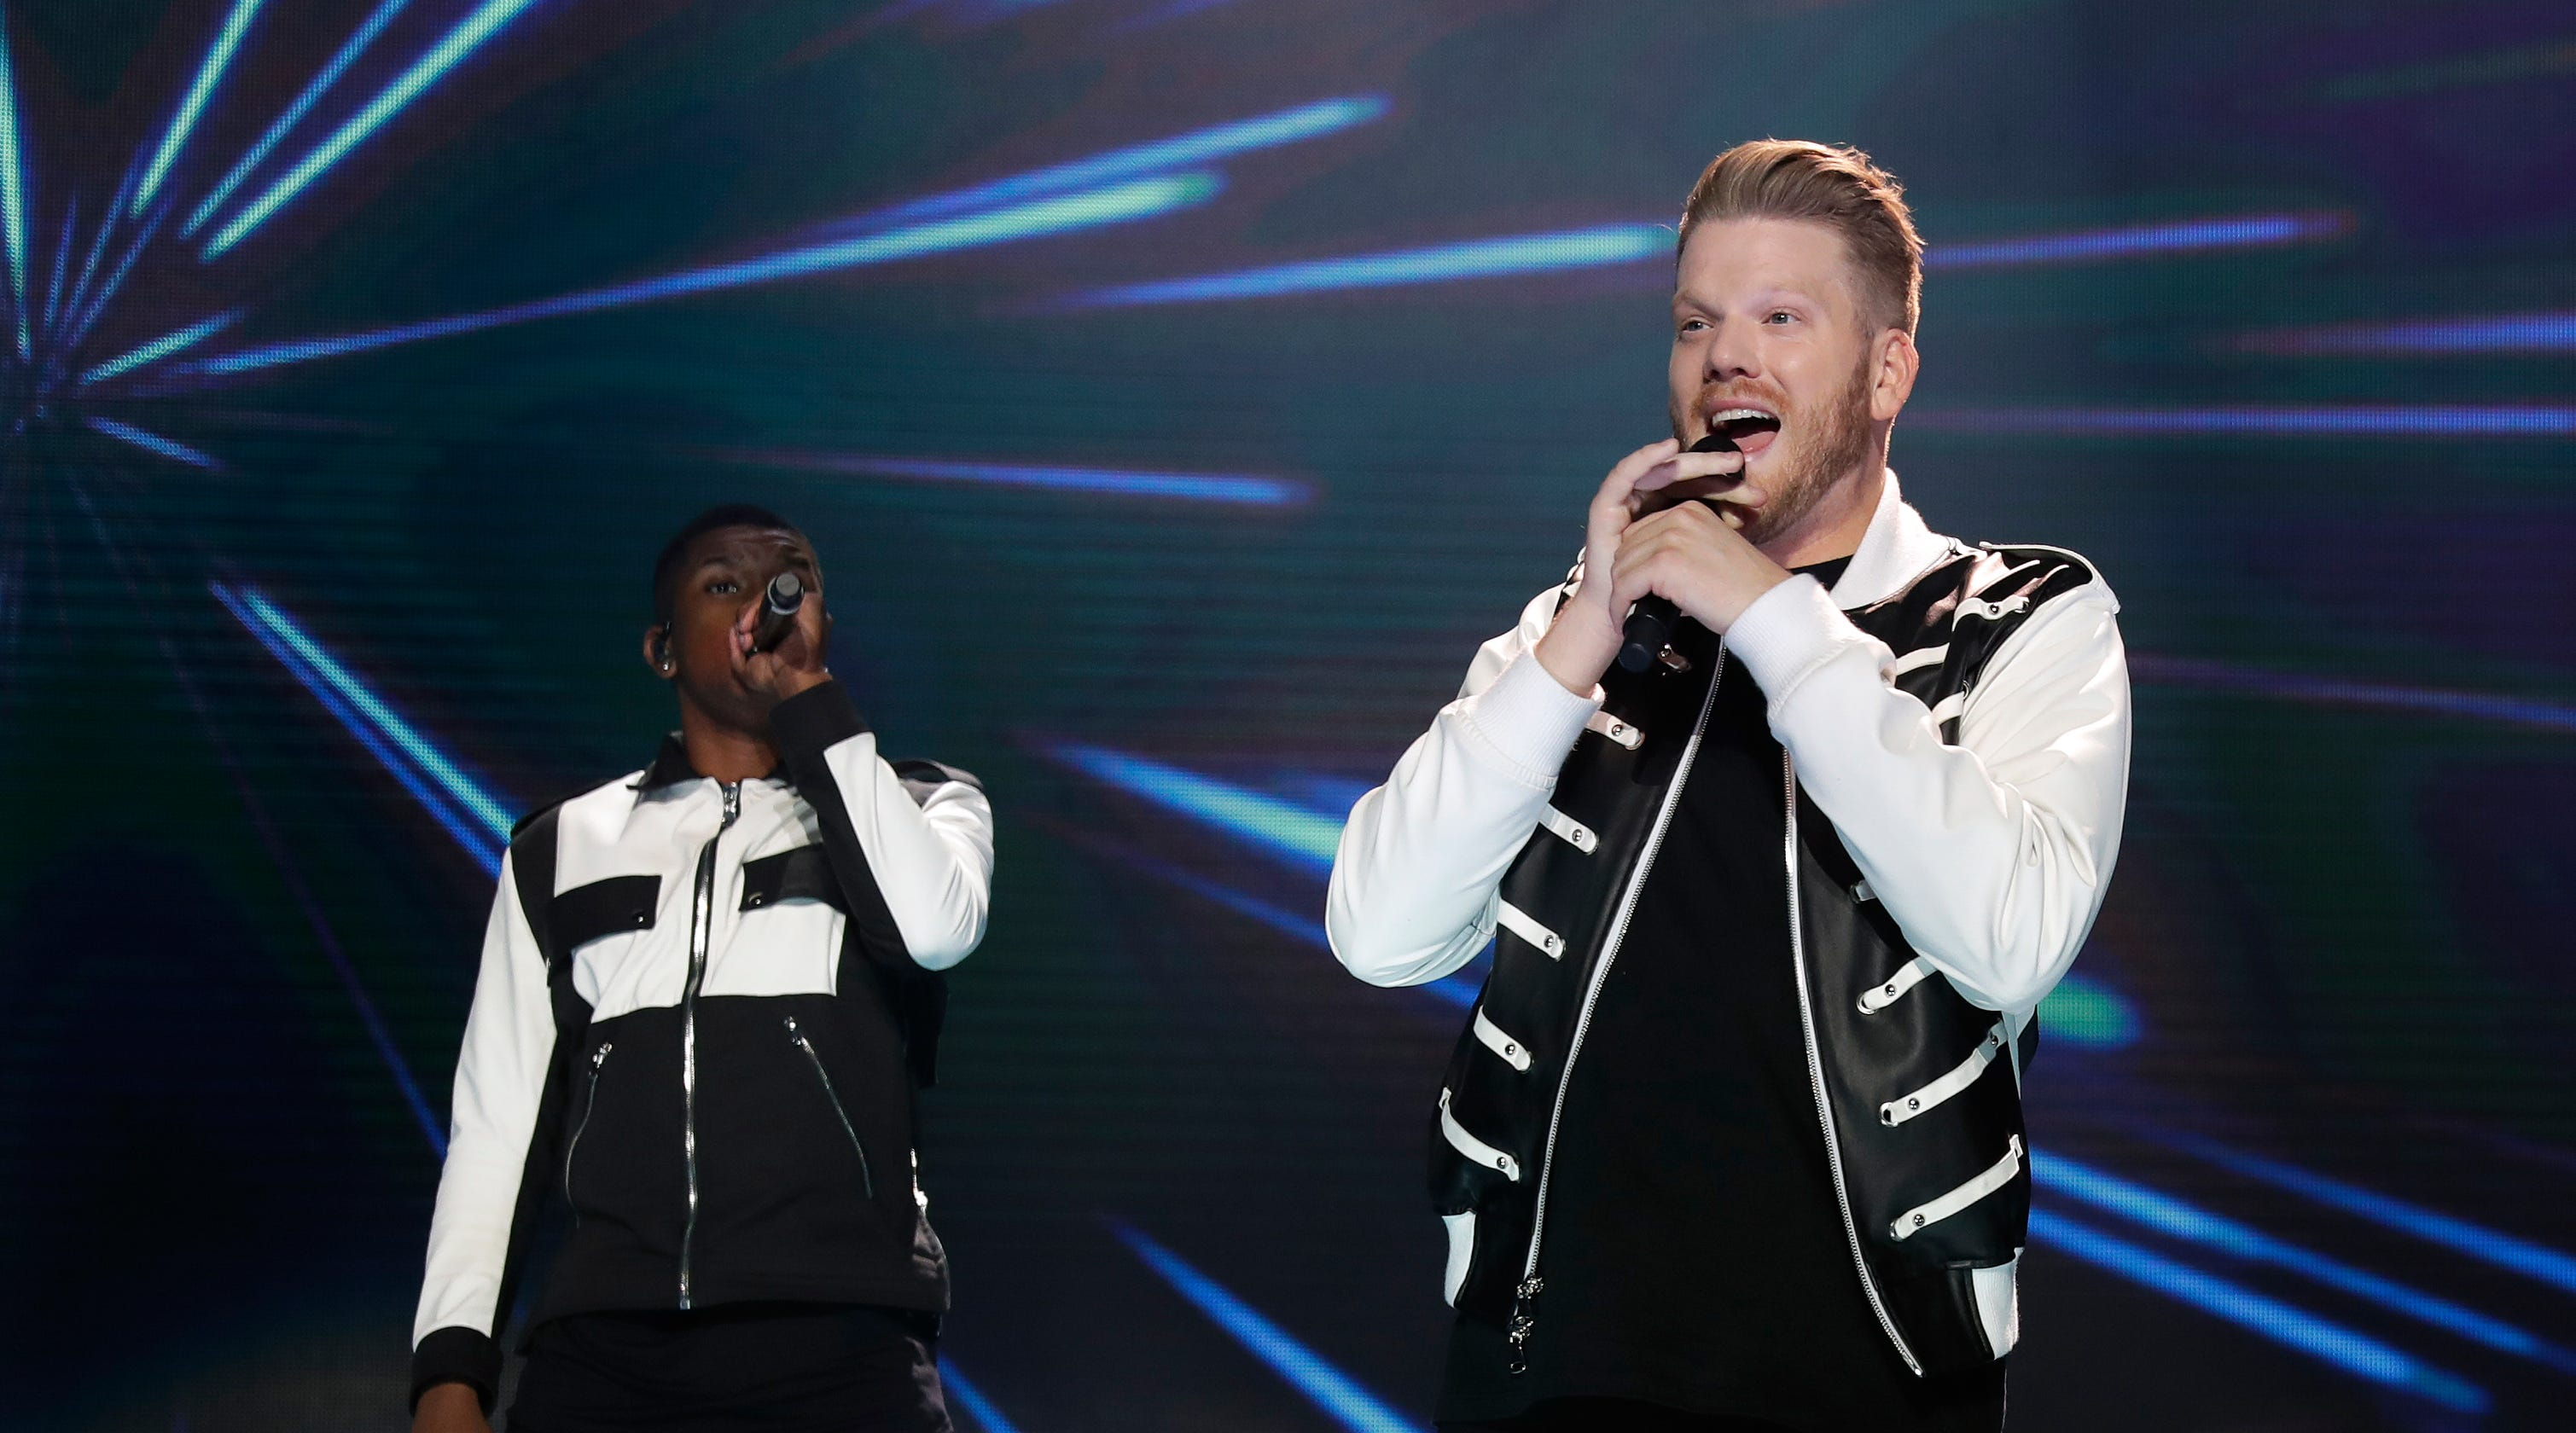 Pentatonix covers a lot of musical territory (and 'Go Pack